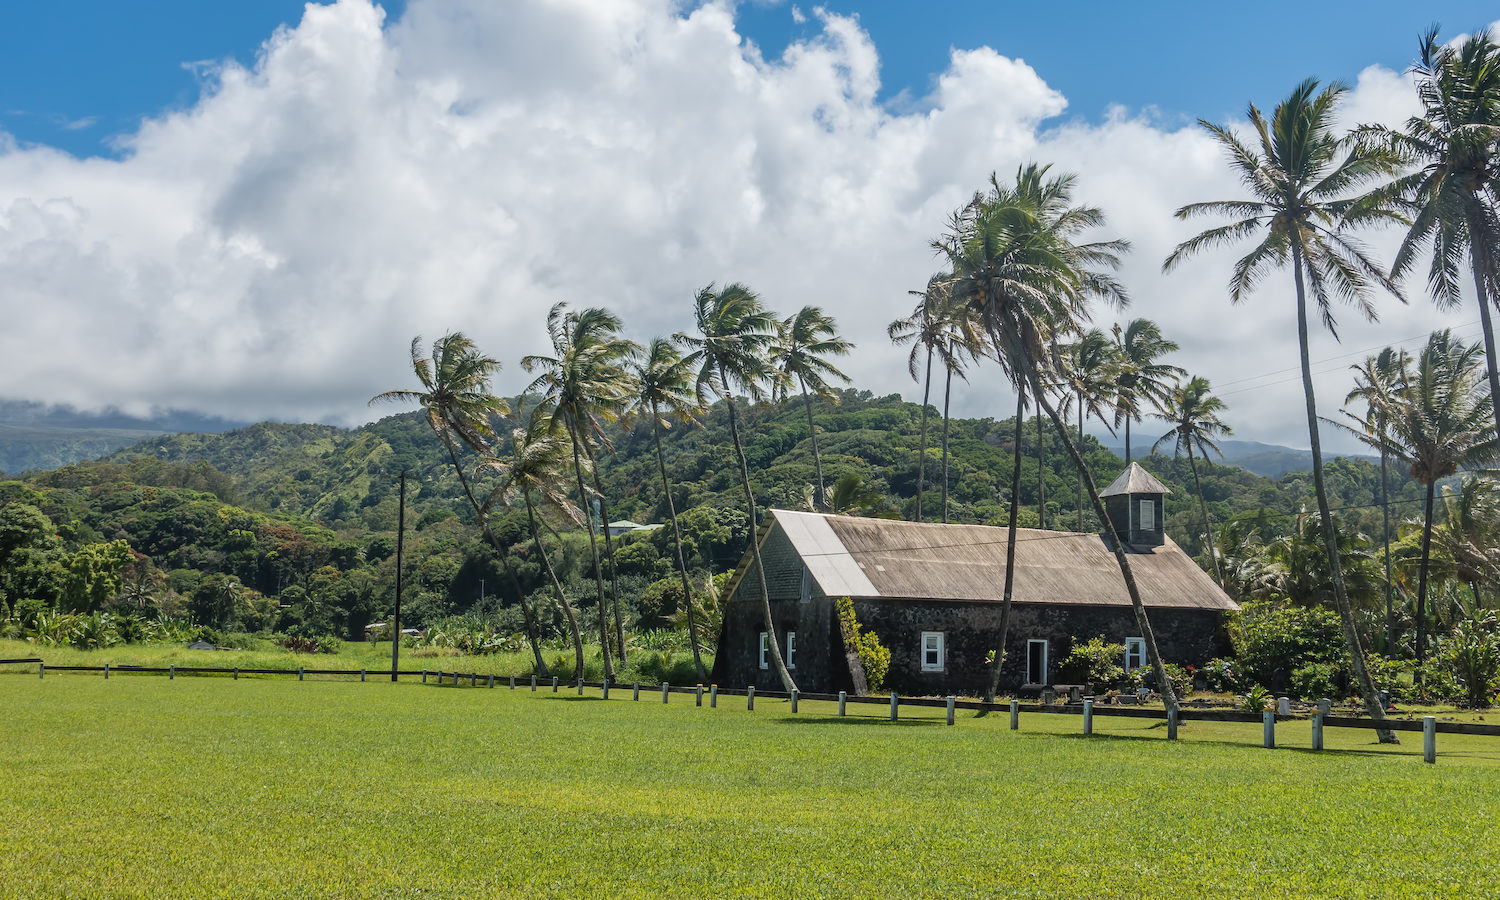 11Road to Hana GyPSy Guide Narrated Driving Tour App